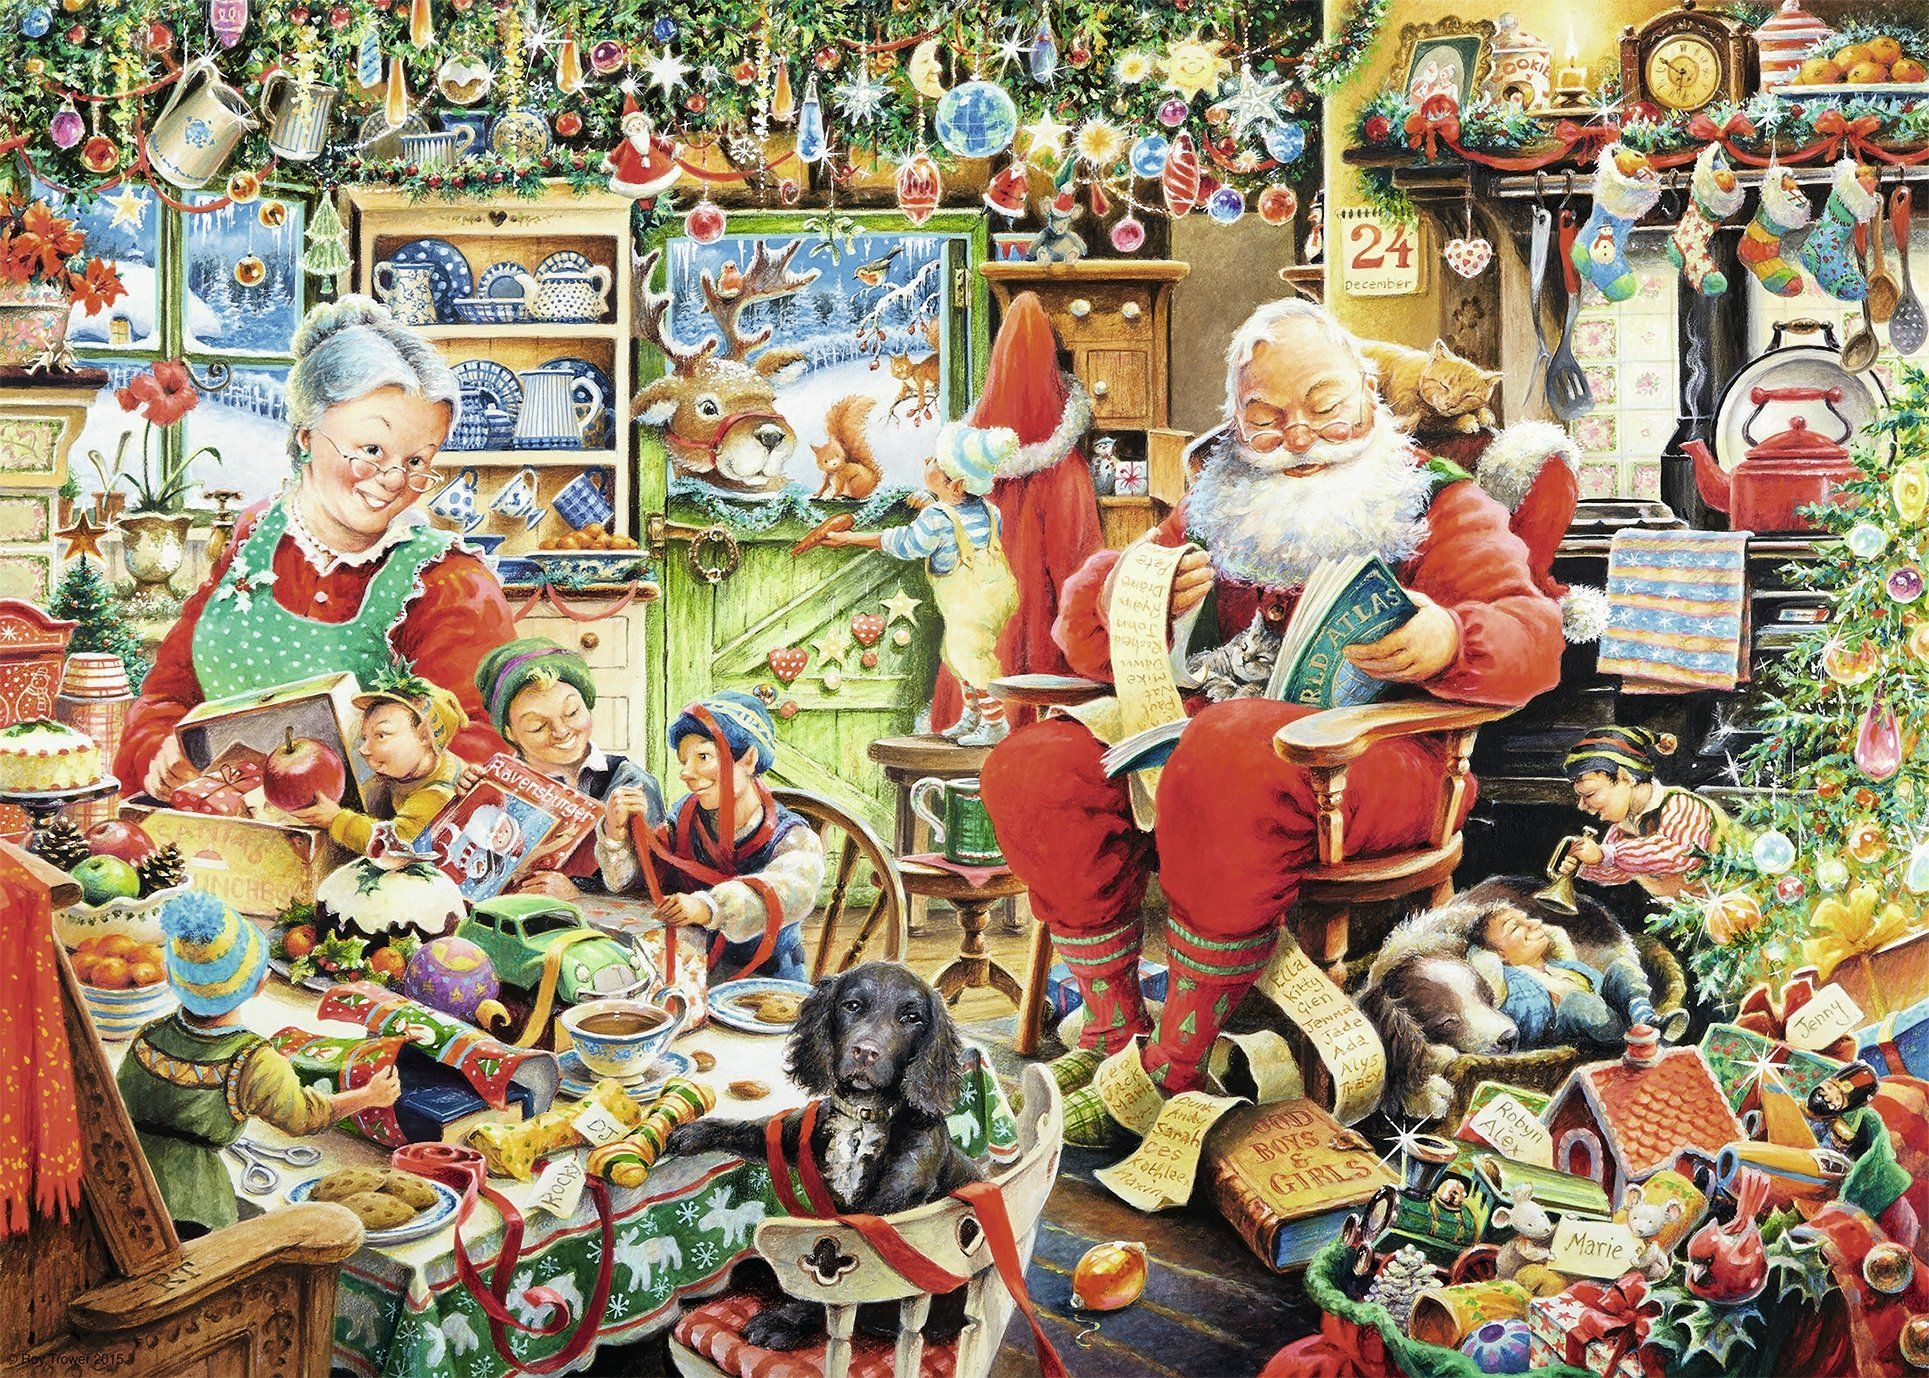 ravensburger christmas jigsaw puzzles are ideal for family fun and challenging enough for just about any jigsaw puzzler check out this awesome collection